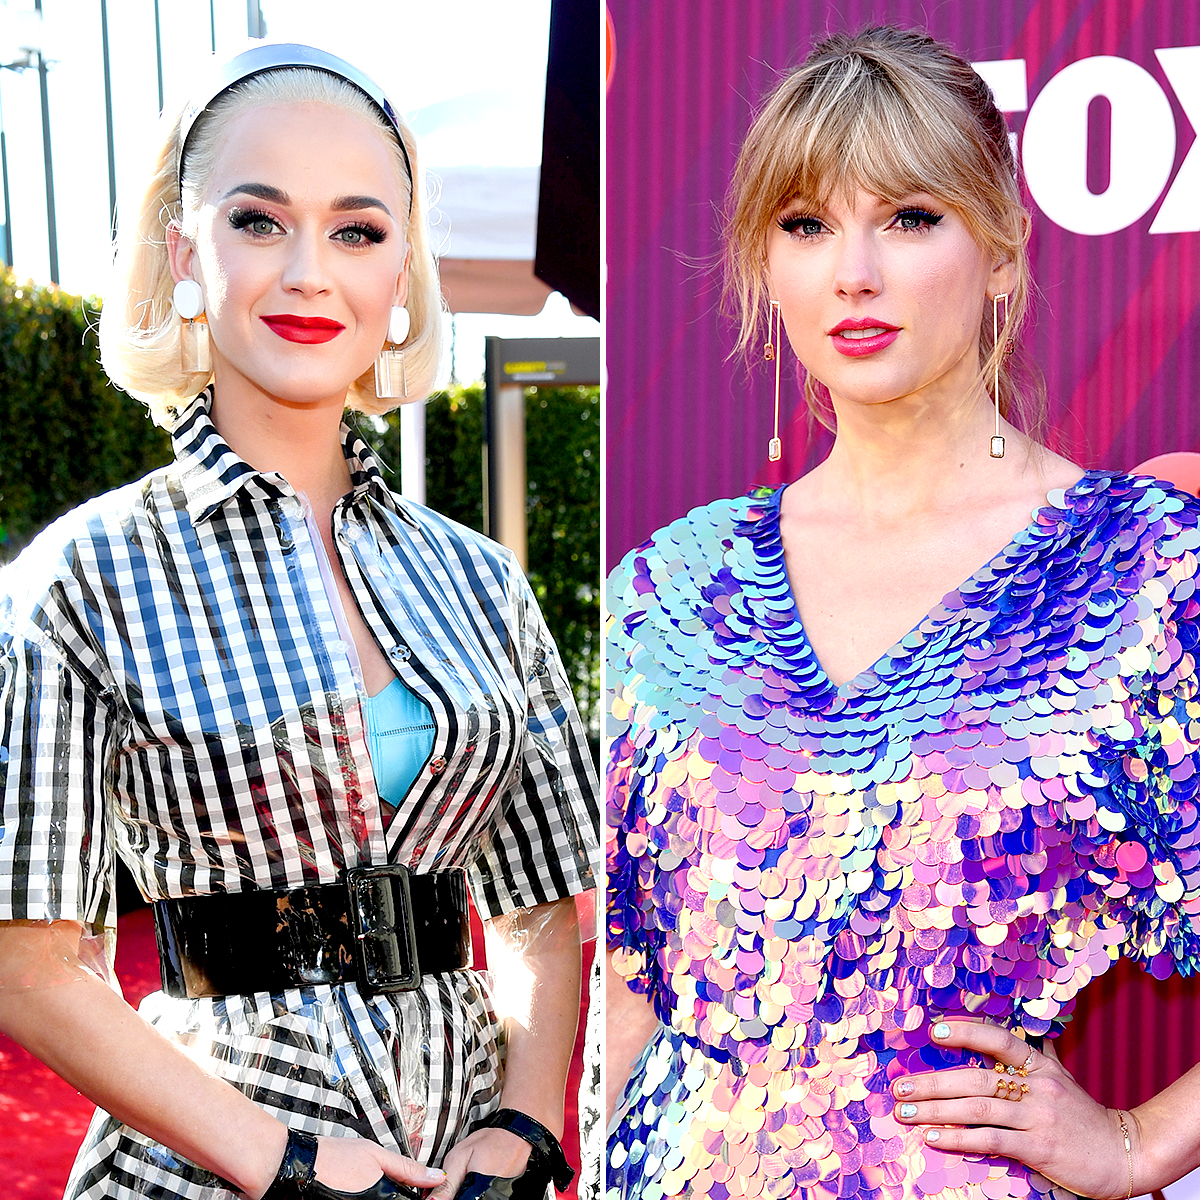 A Look Back at Katy Perry and Taylor Swift's Complicated Feud